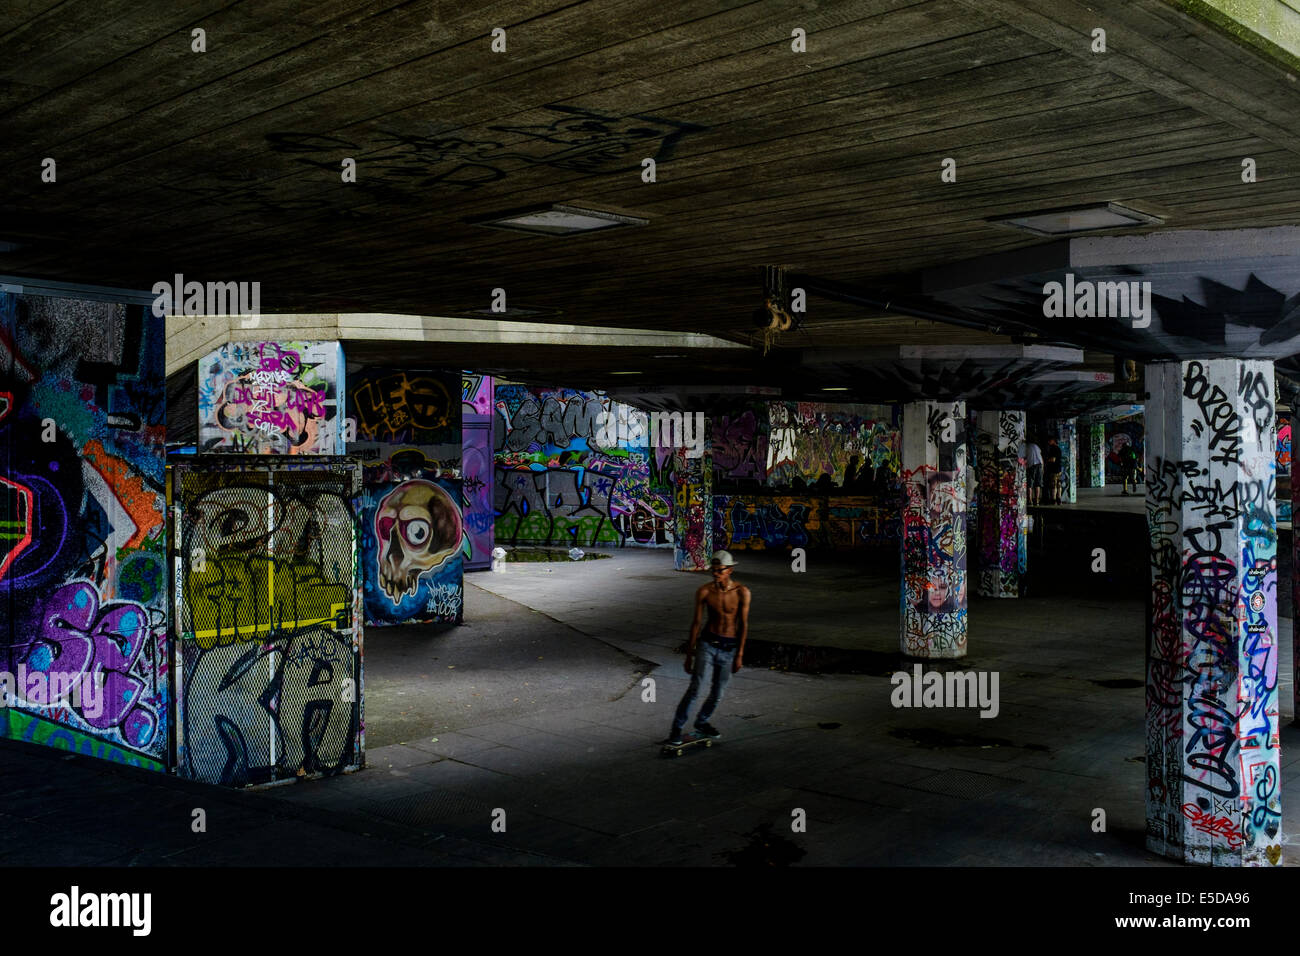 London urban Fotografie: Einsame skater an der Southbank Skatepark, London, UK Stockbild